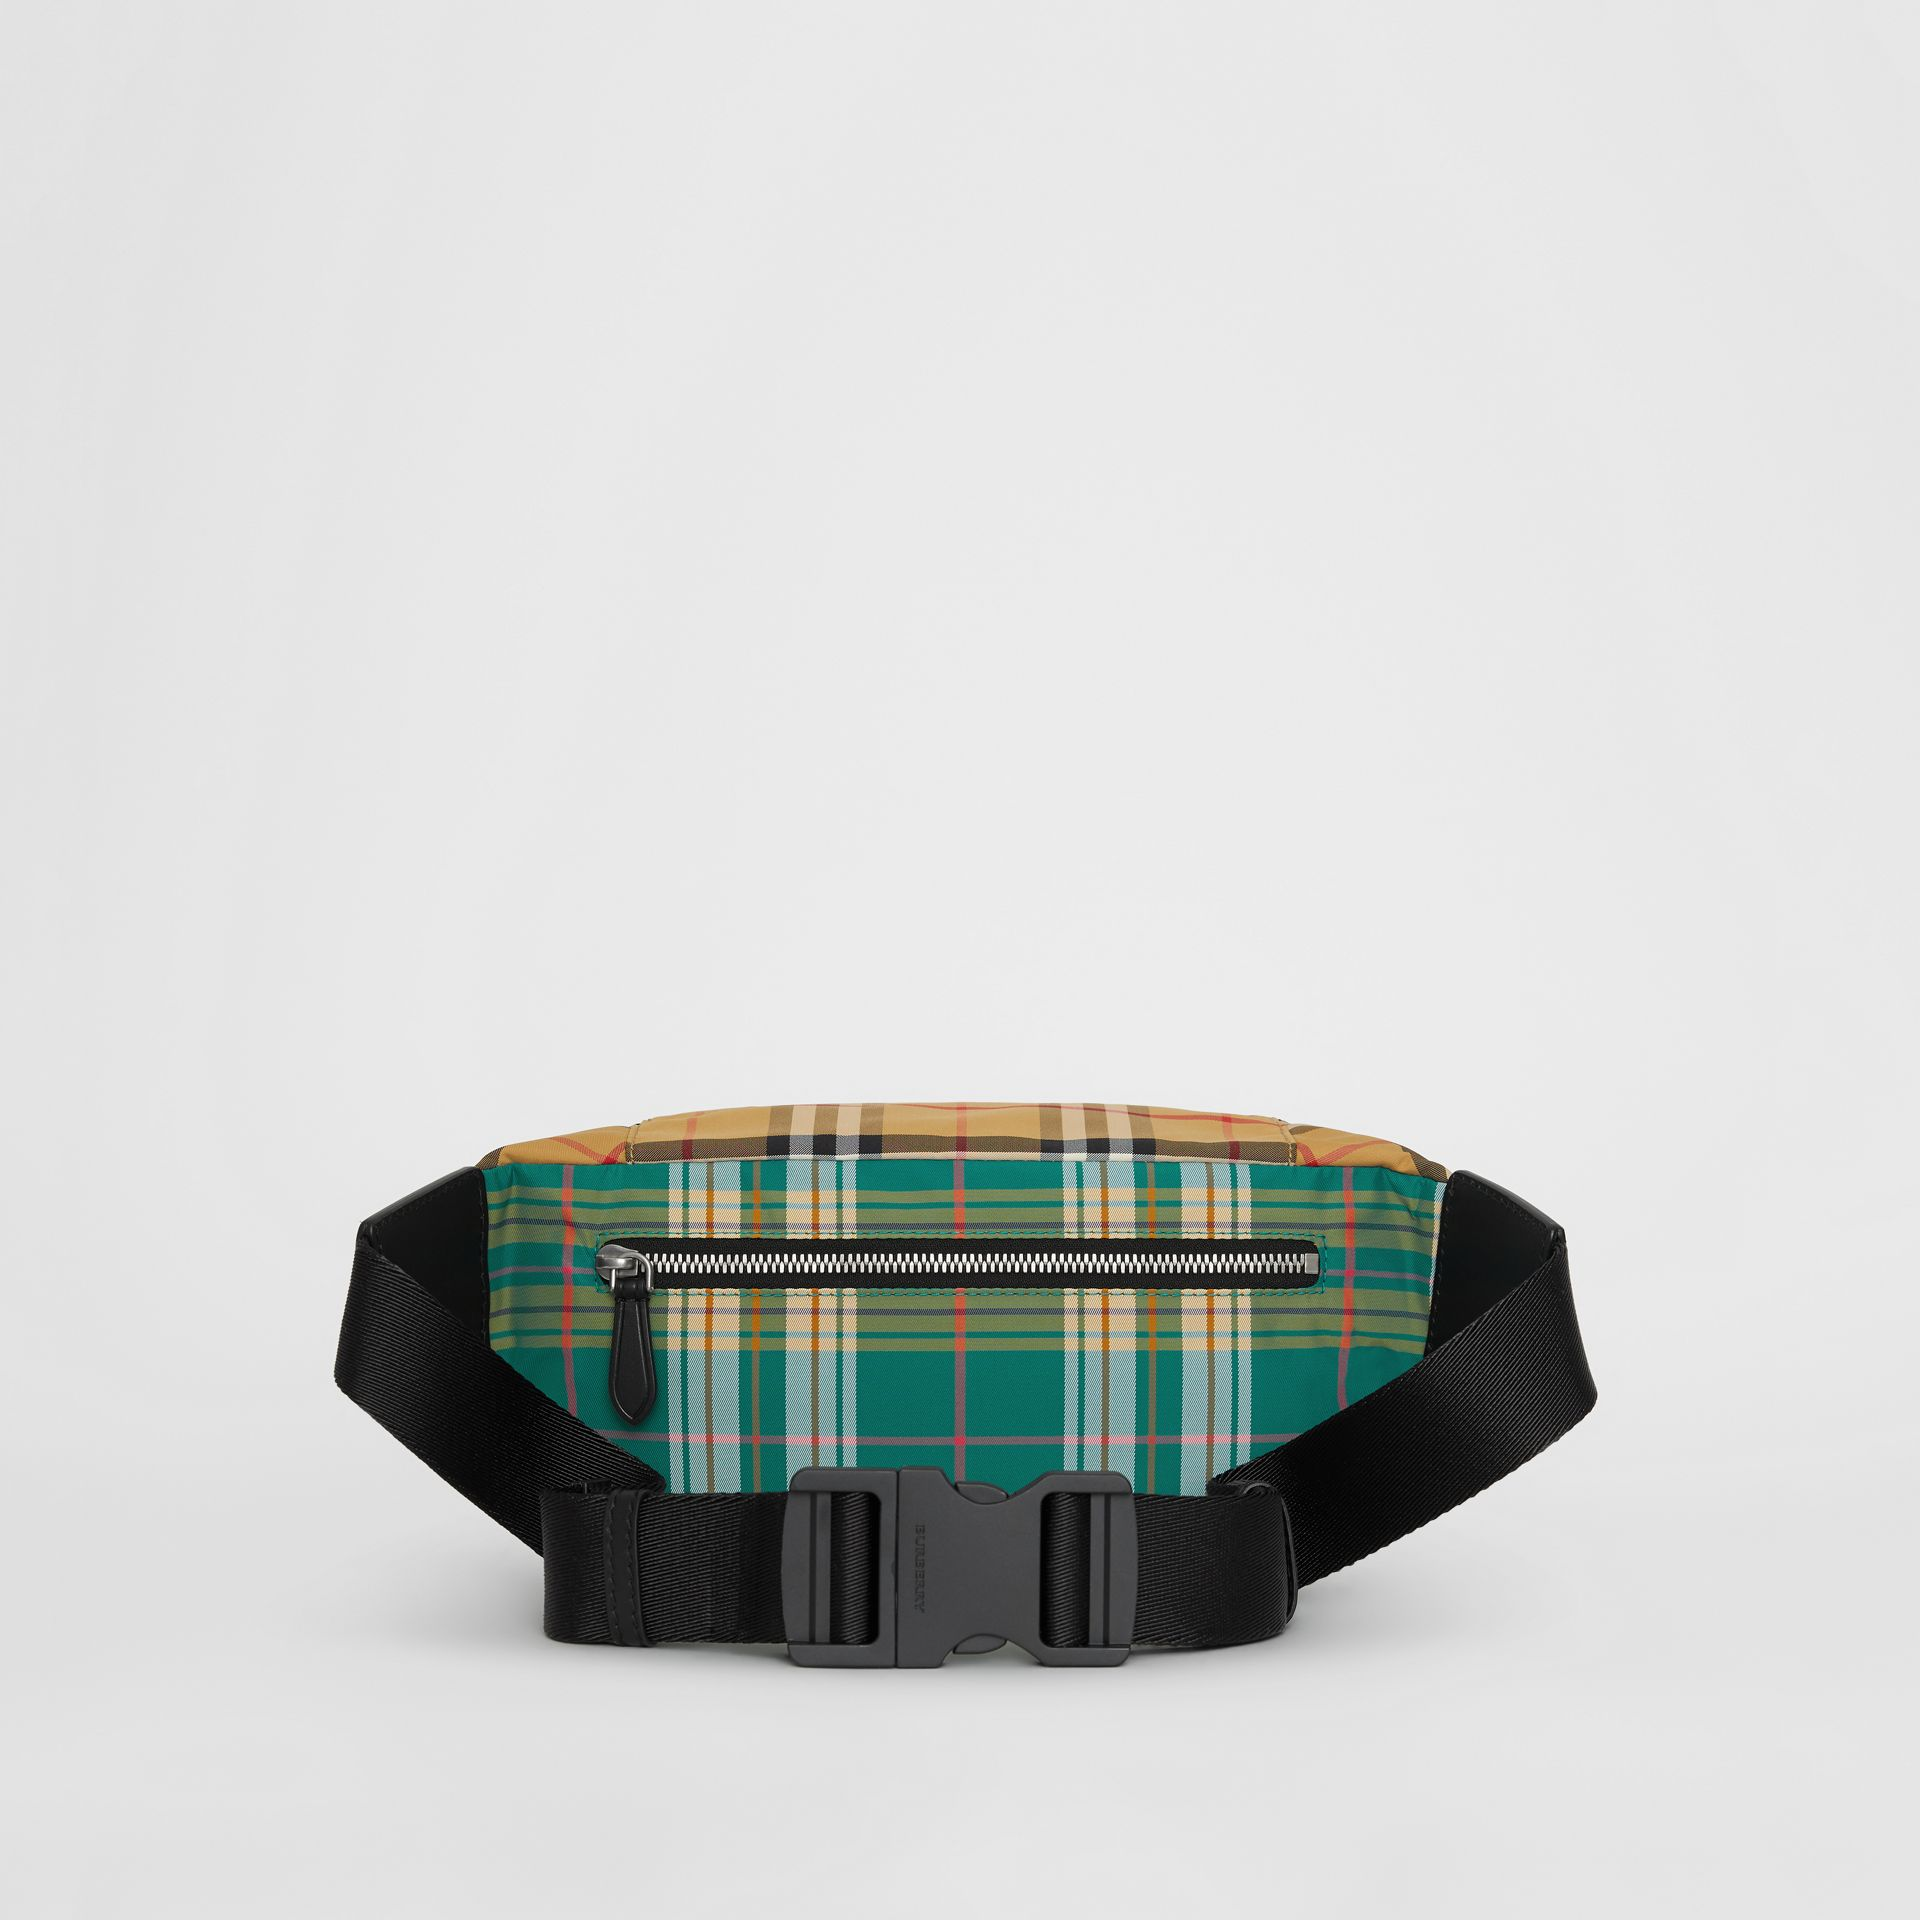 Medium Vintage Check and Tartan Bum Bag in Pine Green | Burberry - gallery image 7